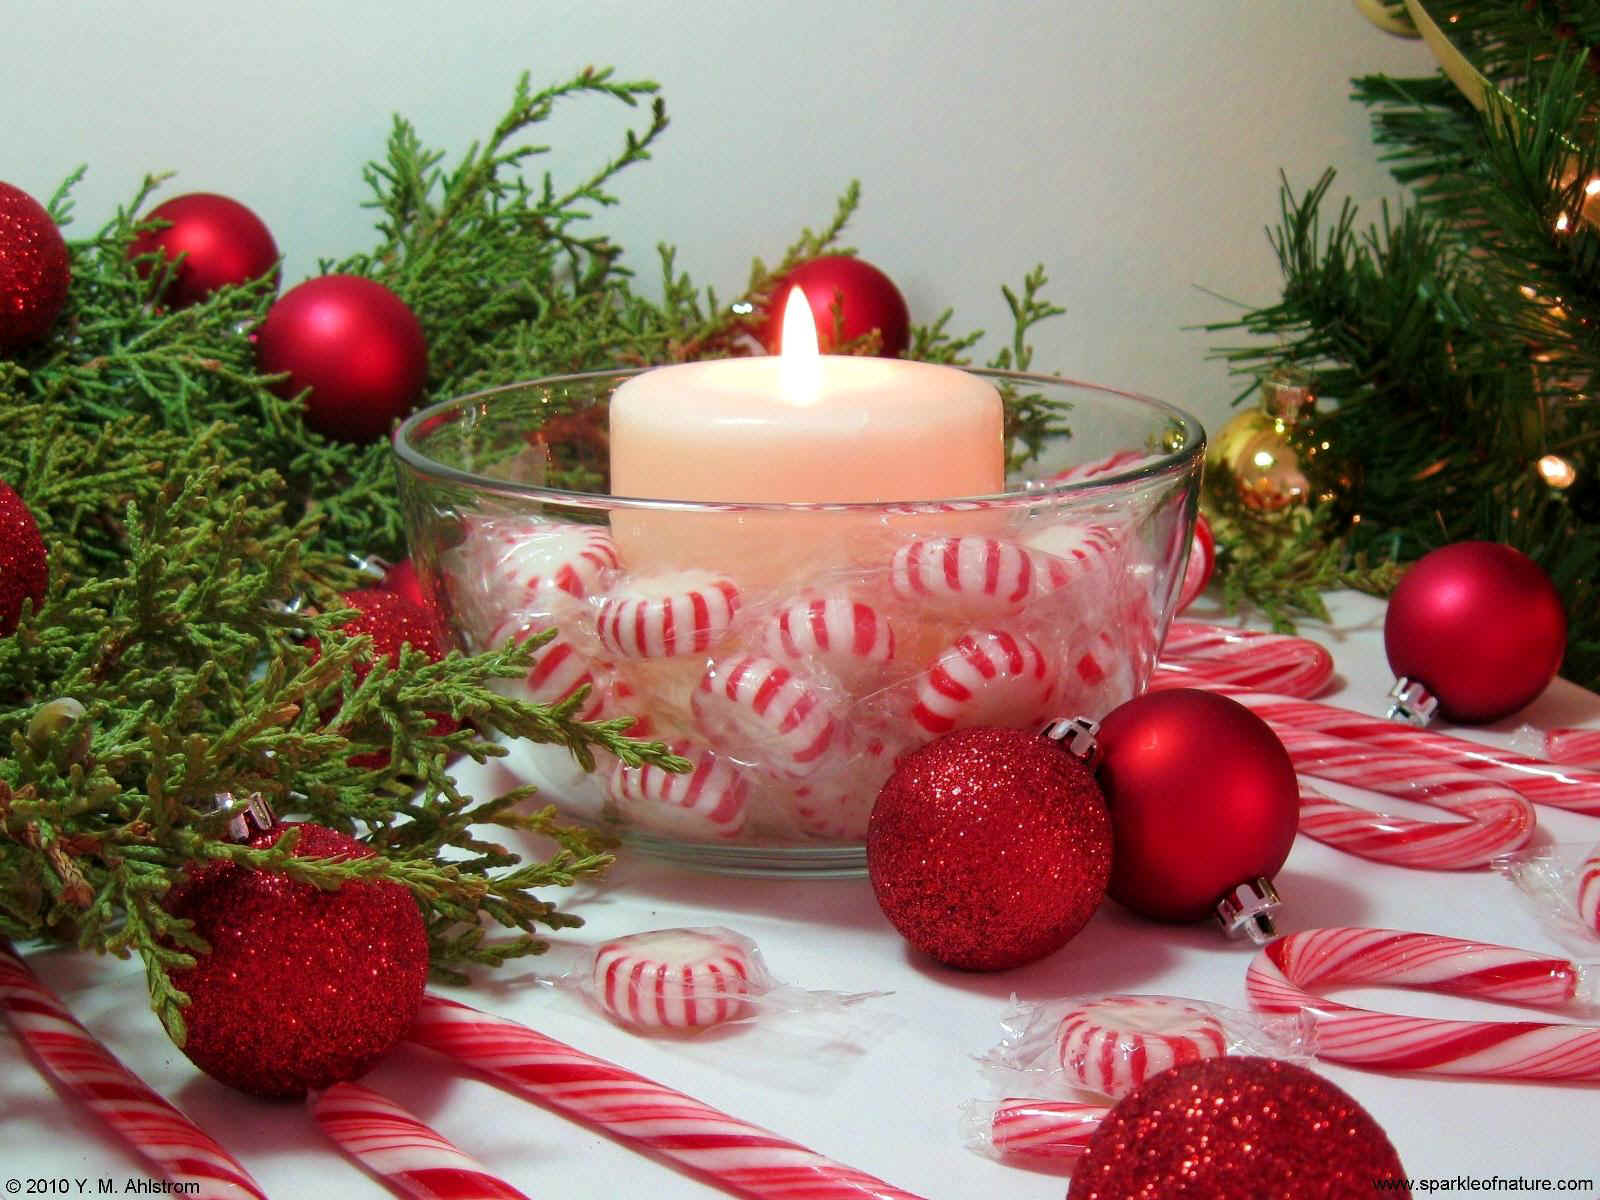 10461 peppermint candle 1600x1200.jpg (284365 bytes)